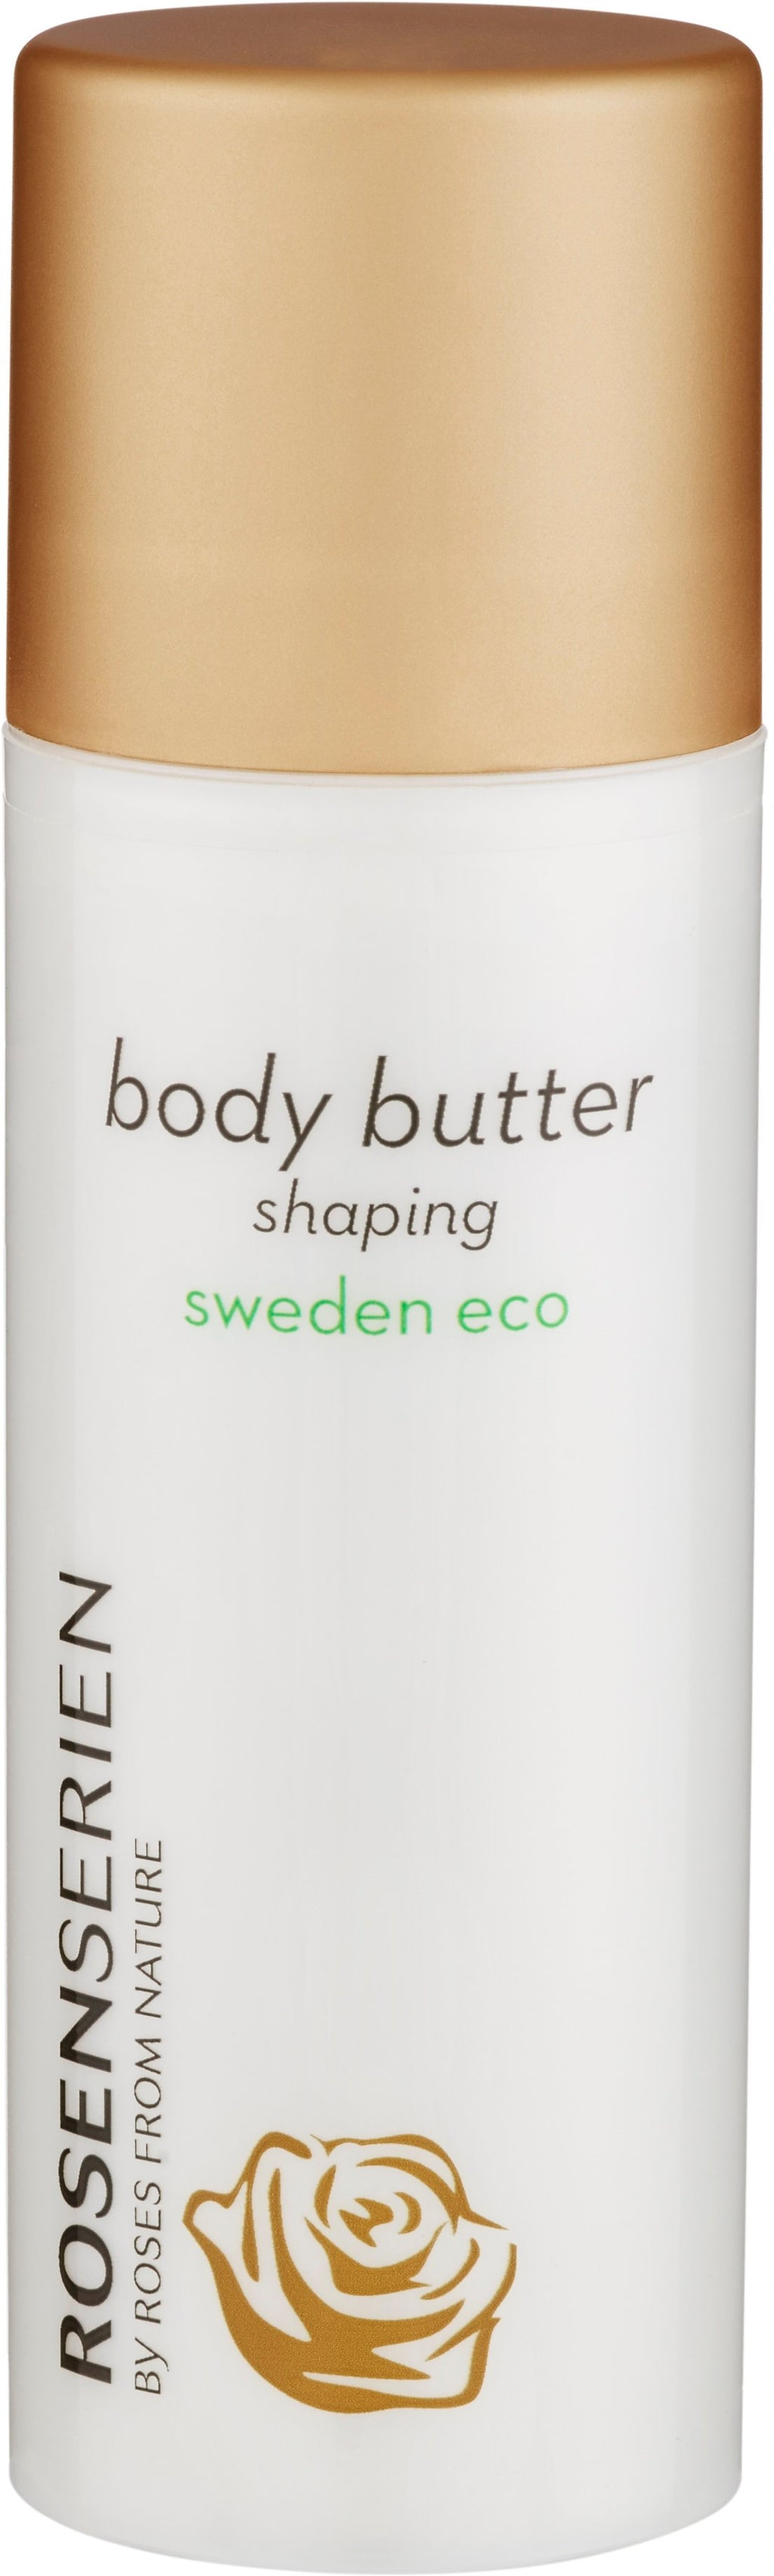 Body Butter Shaping